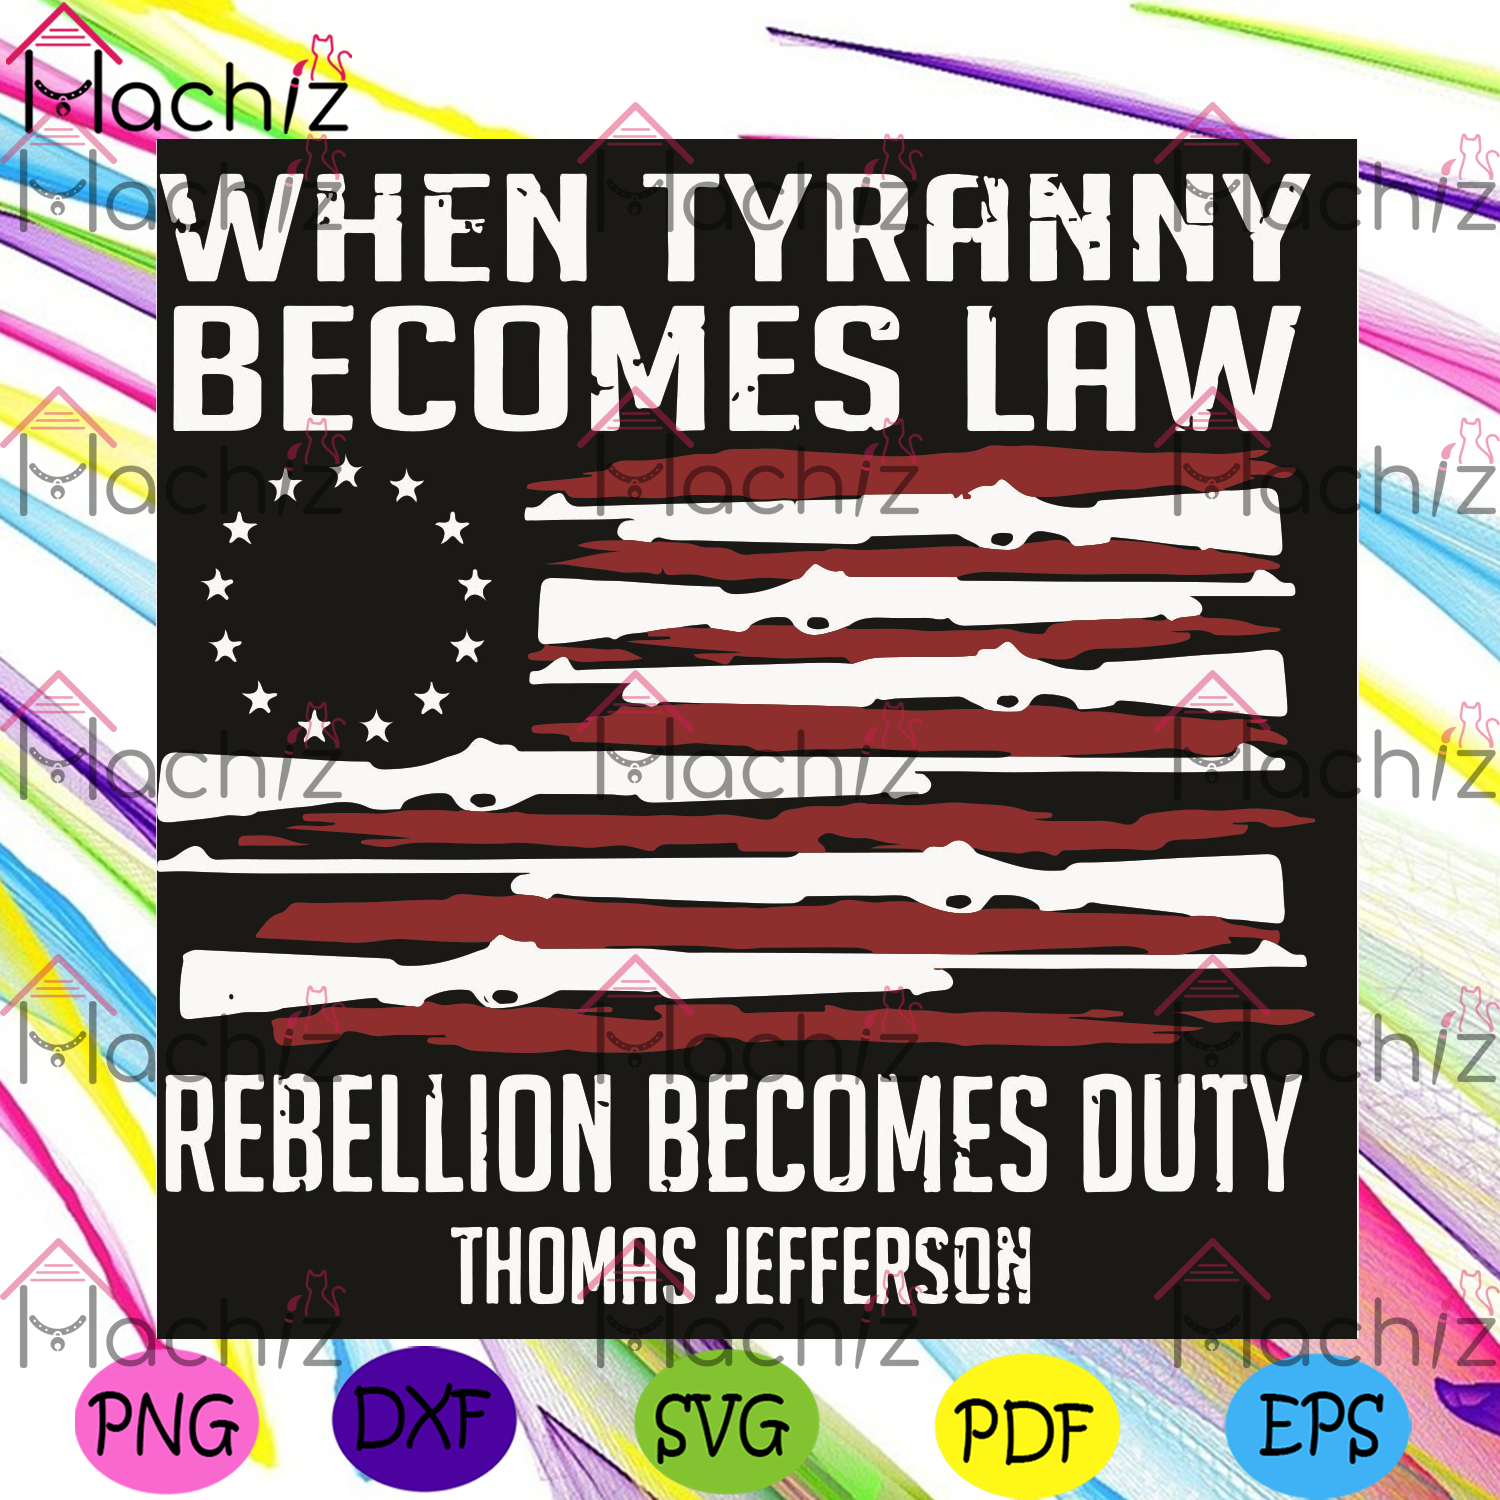 When Tyranny Becomes Law Svg, Trending Svg, Tyranny Svg, Rebellion Becomes Duty Svg, American Flag Svg , USA Vintage Svg, Veteran Day Gif, Thomas Jefferson Quote, Rebel Shirt, American Patriot, Svg Cricut